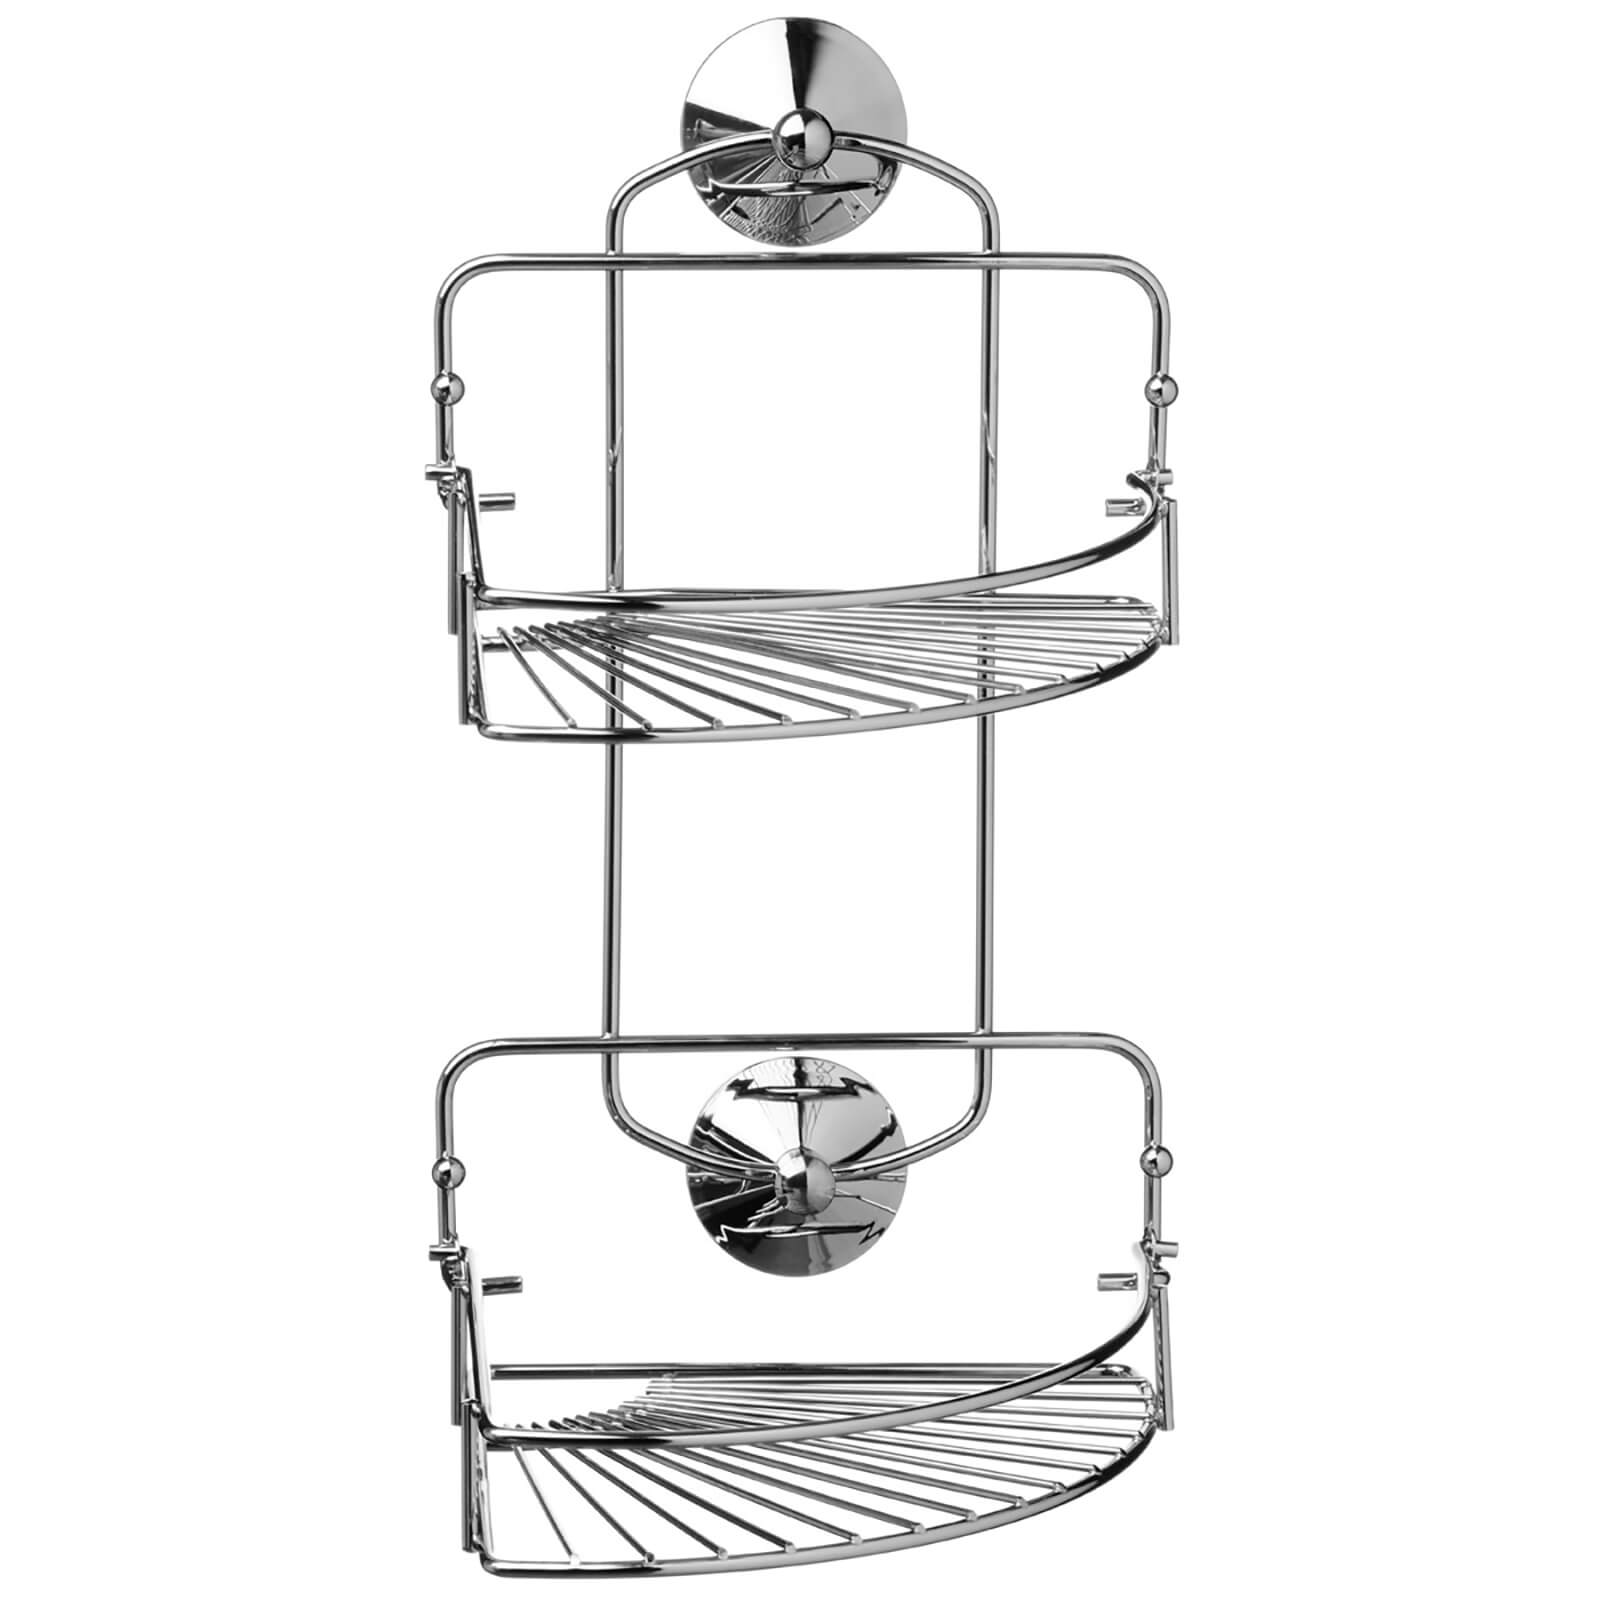 Fifty Five South Suction Fixing Two Tier Folding Corner Caddy - Chrome Finish